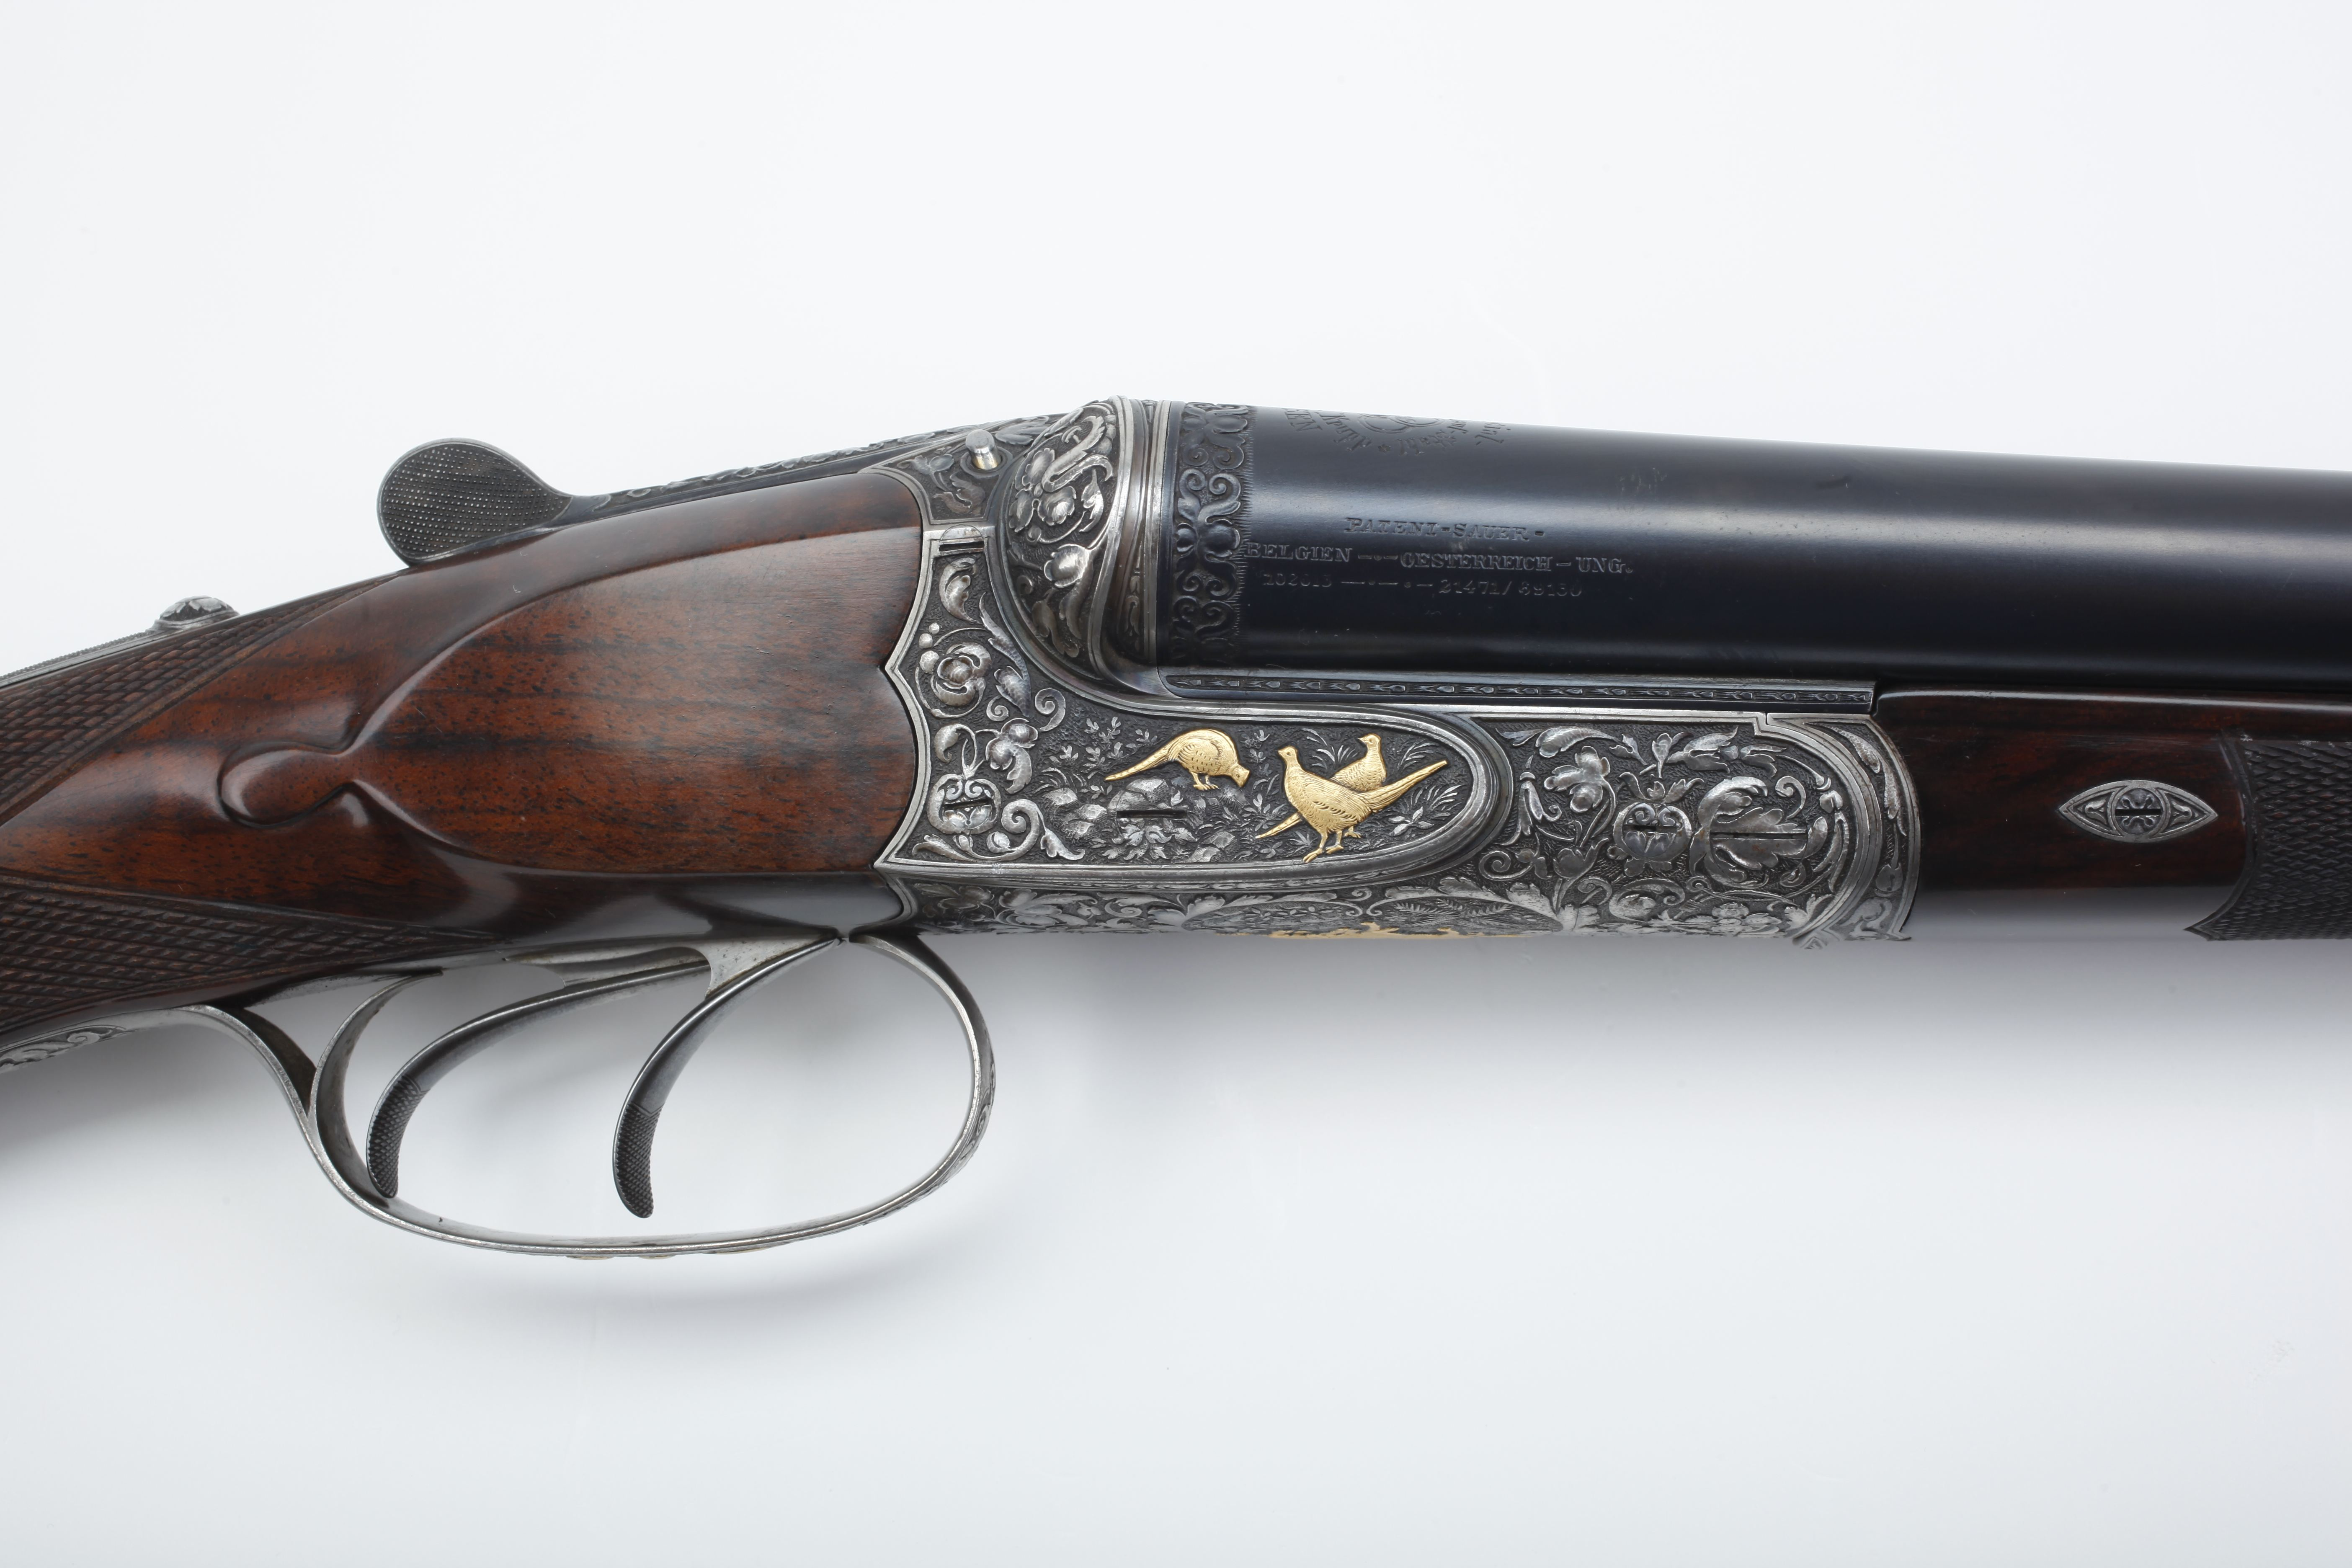 Charles Daly Diamond Grade Side by Side Shotgun - 12 ga.